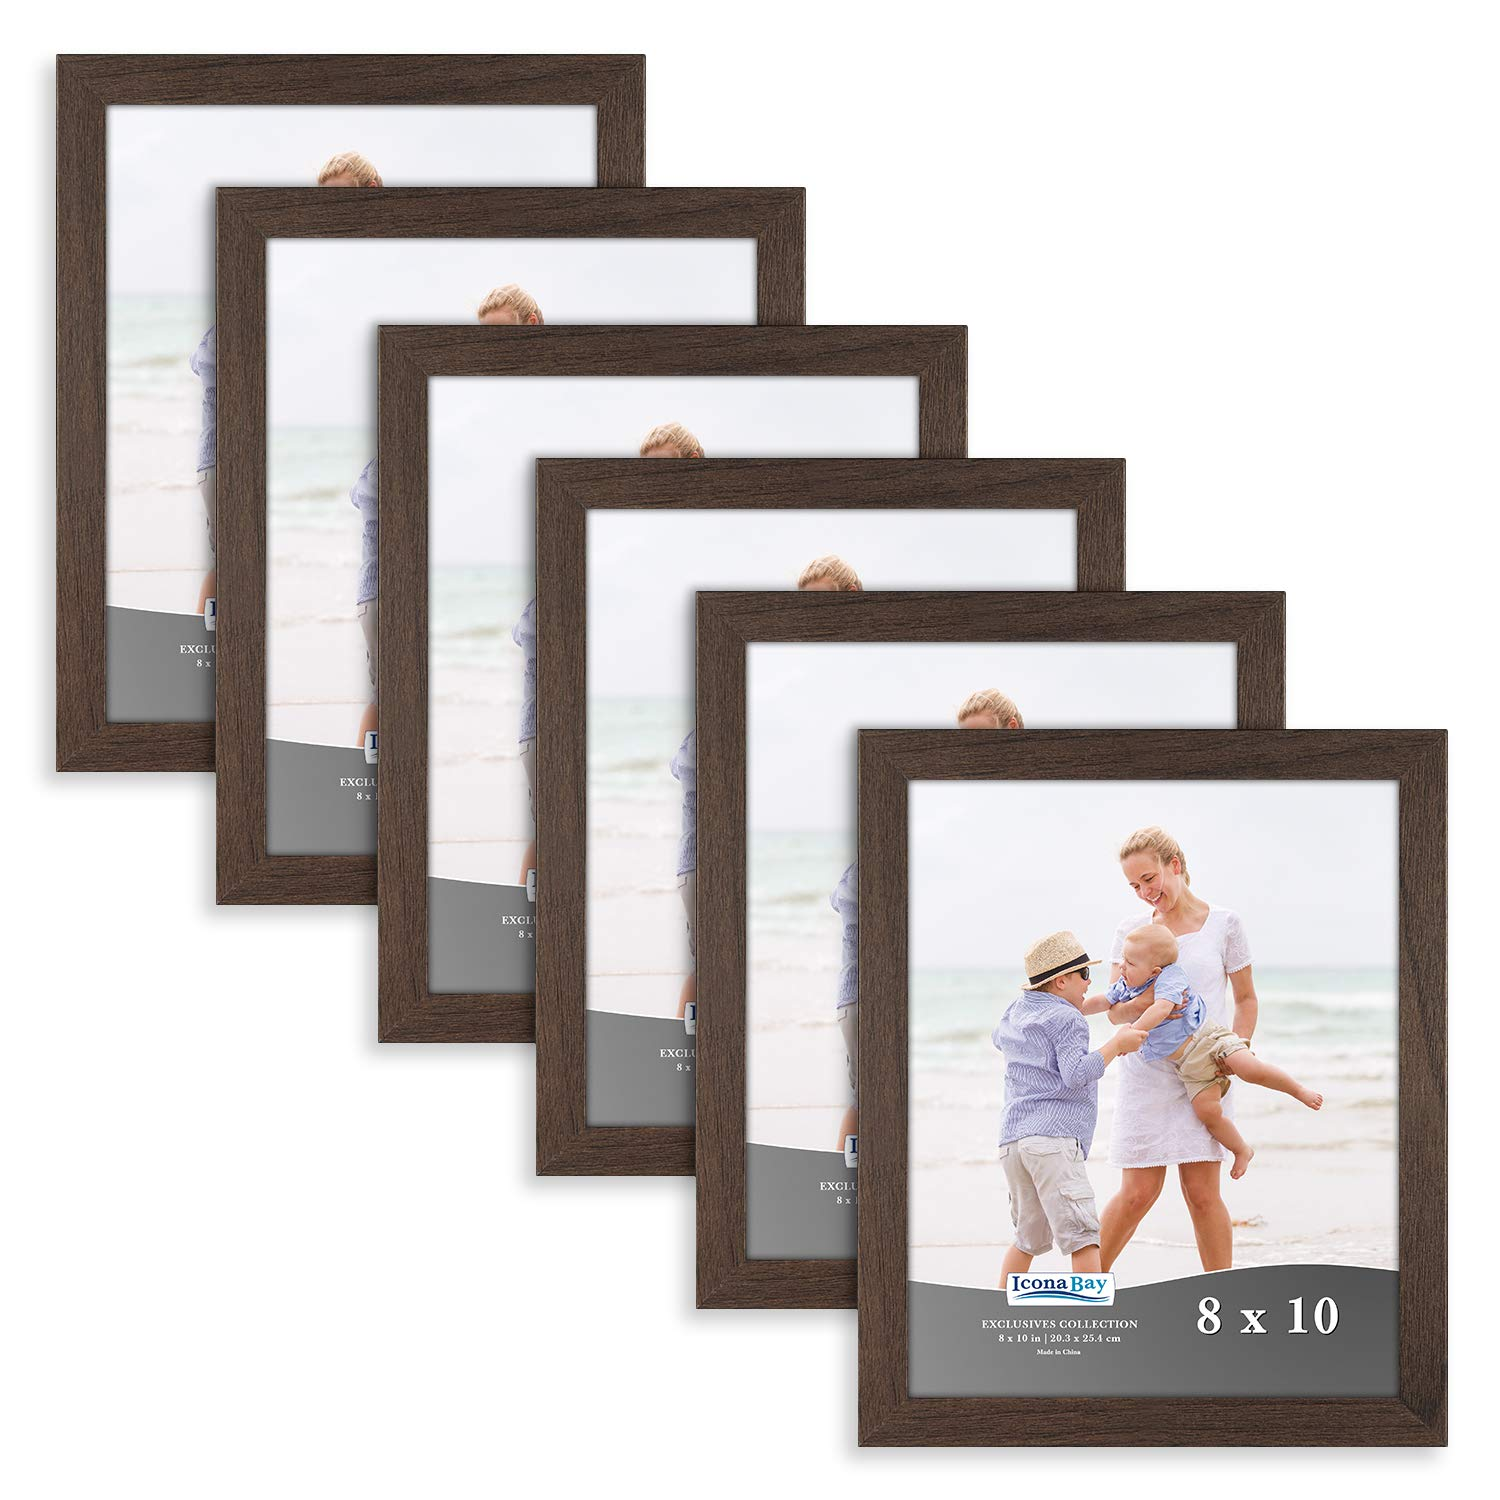 Icona Bay 8x10 Picture Frame (6 Pack, Hickory Brown), Brown Sturdy Wooden Composite Photo Frame 8 x 10, Wall or Table Mount, Set of 6 Exclusives Collection by Icona Bay